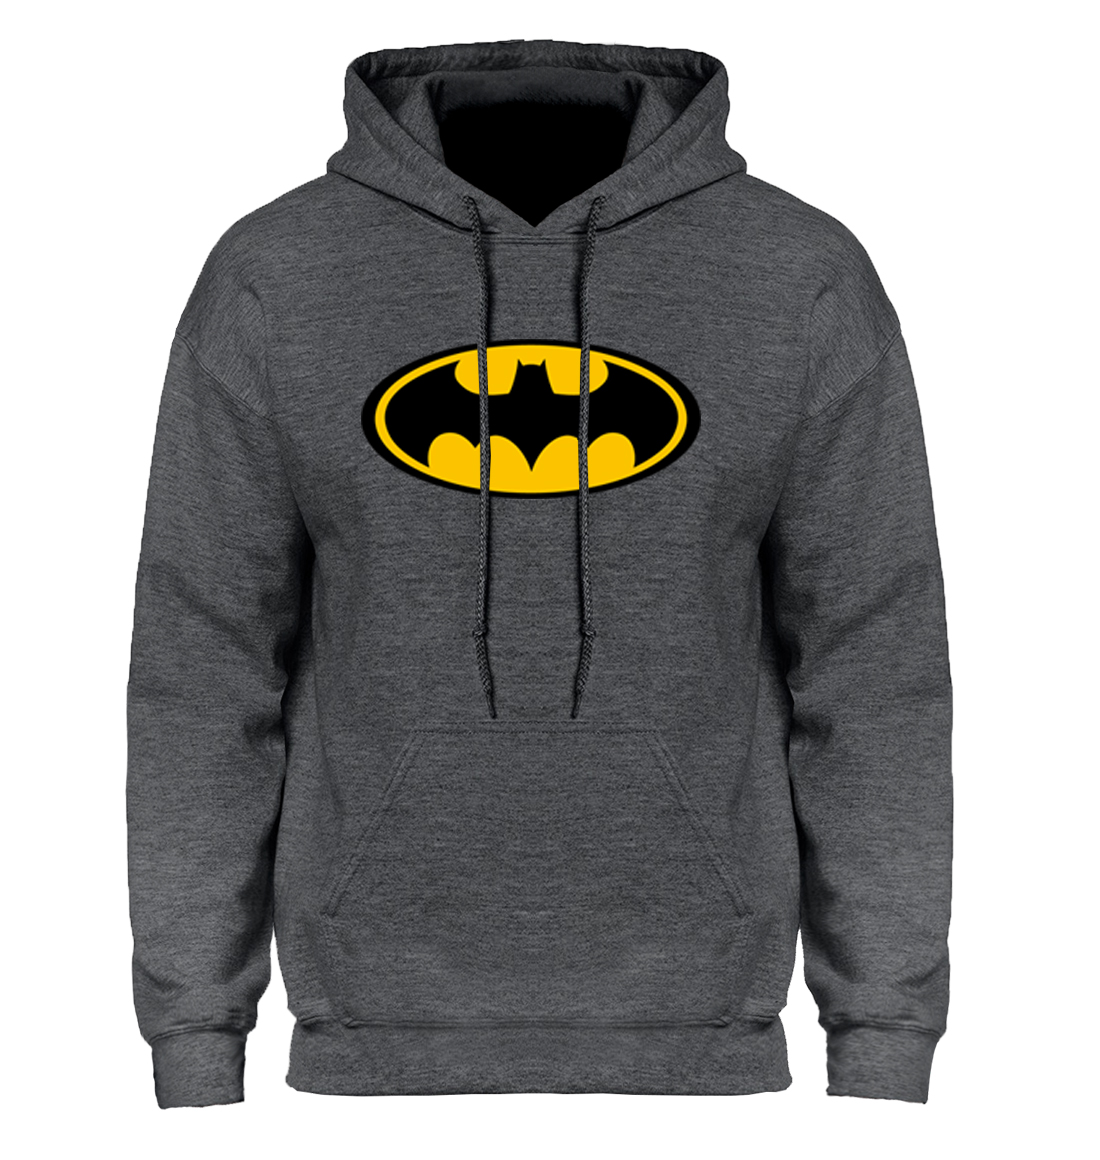 Batman Cartoon Hoodie Hoodies Sweatshirt Men 2018 Winter Autumn Hooded Hoody Homens Casual Silm Design Hot Sale Male Men's Coat